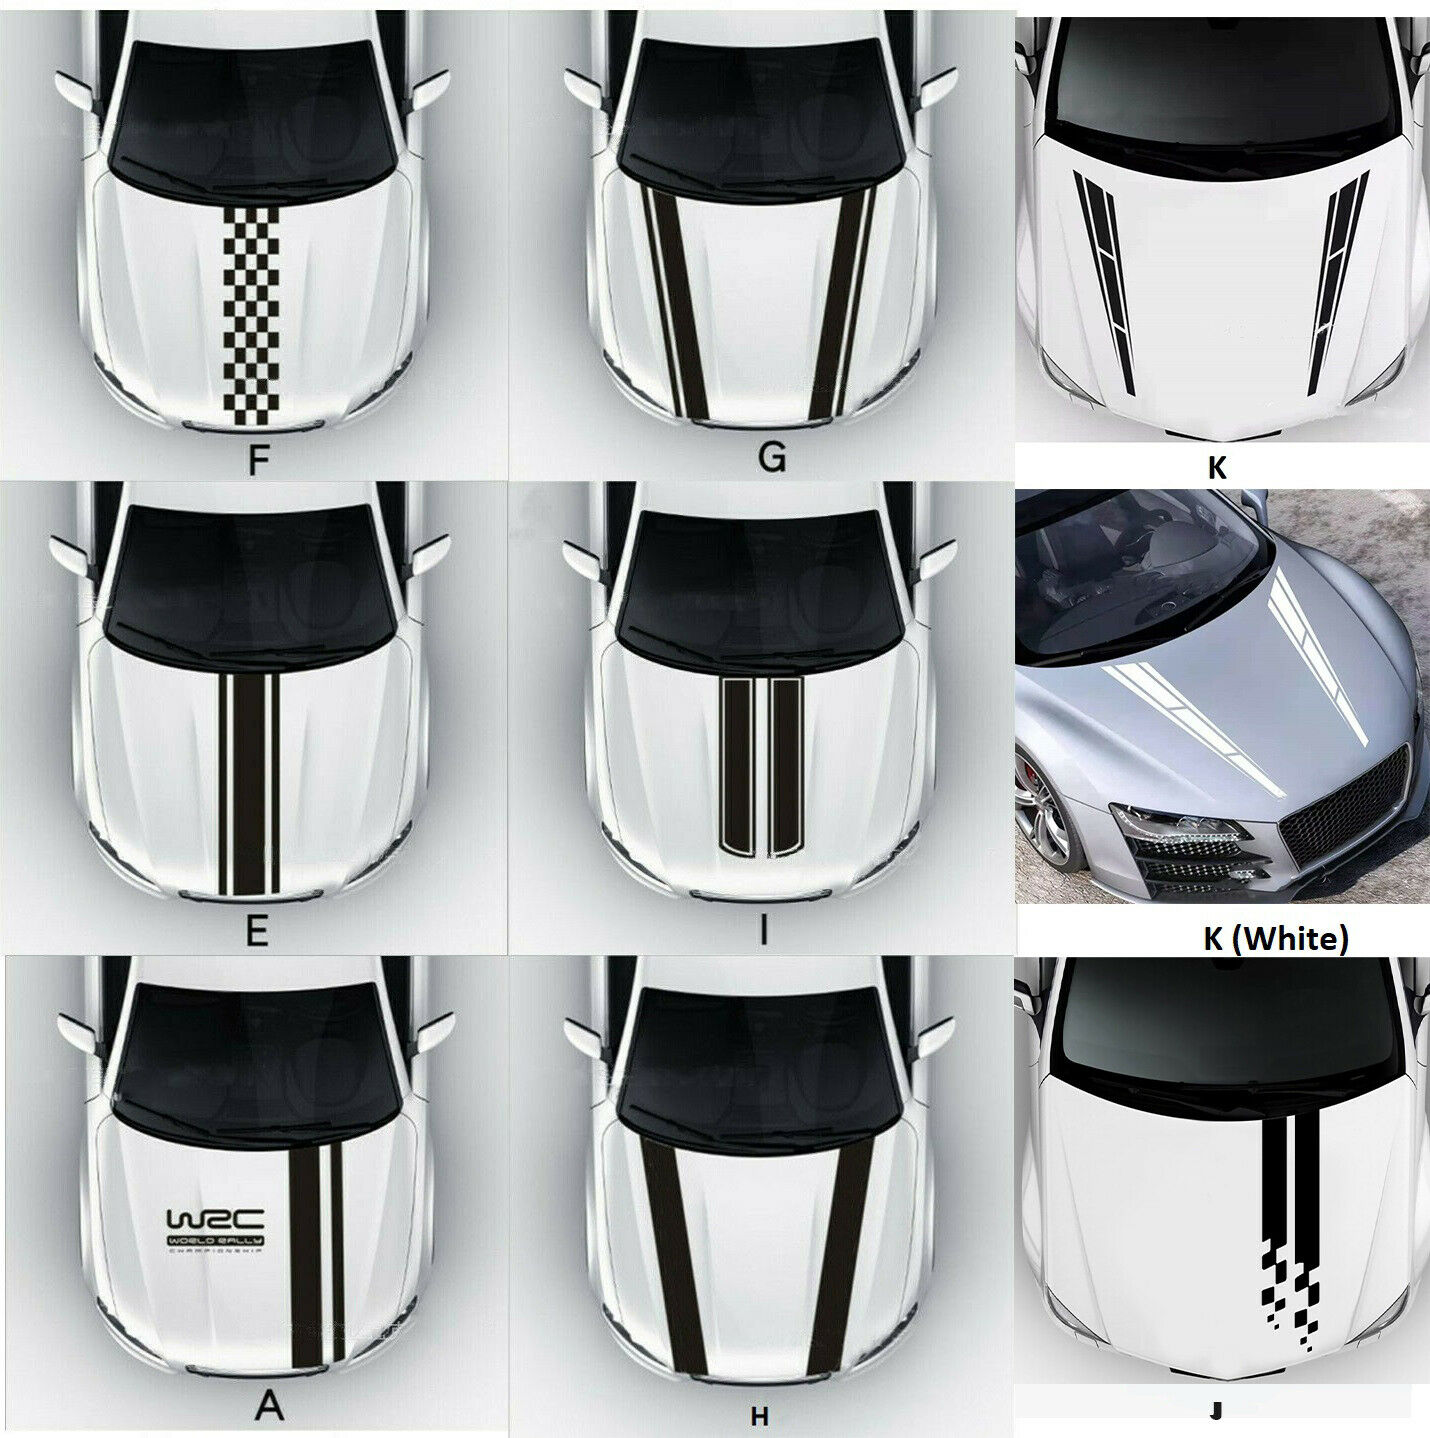 Universal Fit Racing Hood Stripes Decal Vinyl Stickers for Car SUV Truck